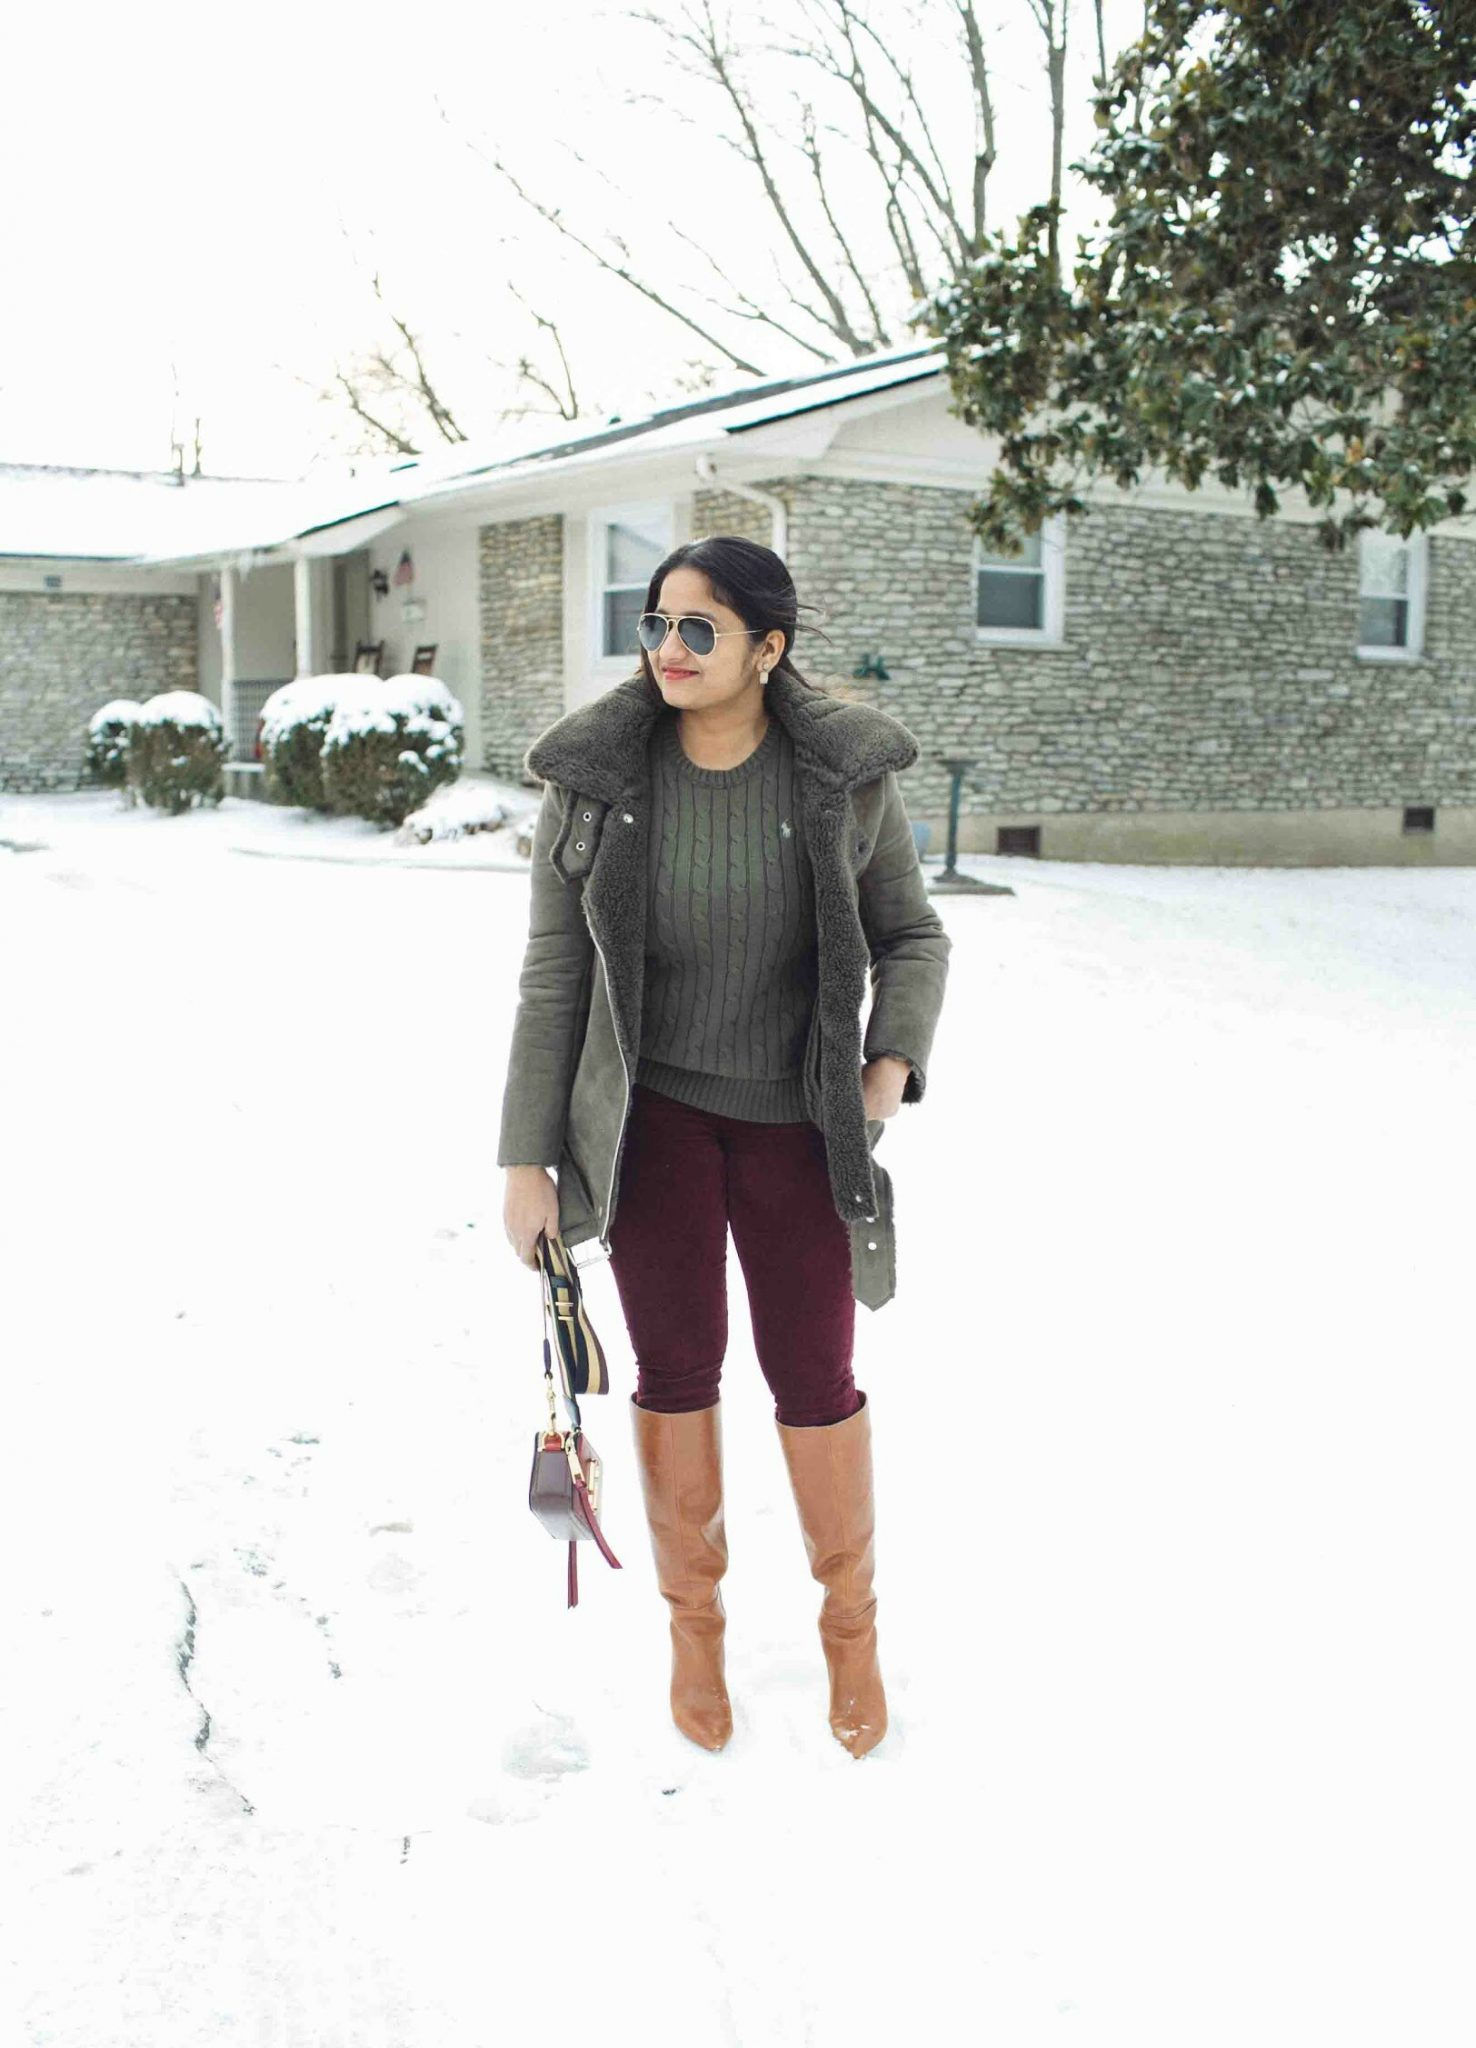 Lifestyle Blog Dreaming Loud wearing J.O.A. Faux Shearling Biker Jacket in olive